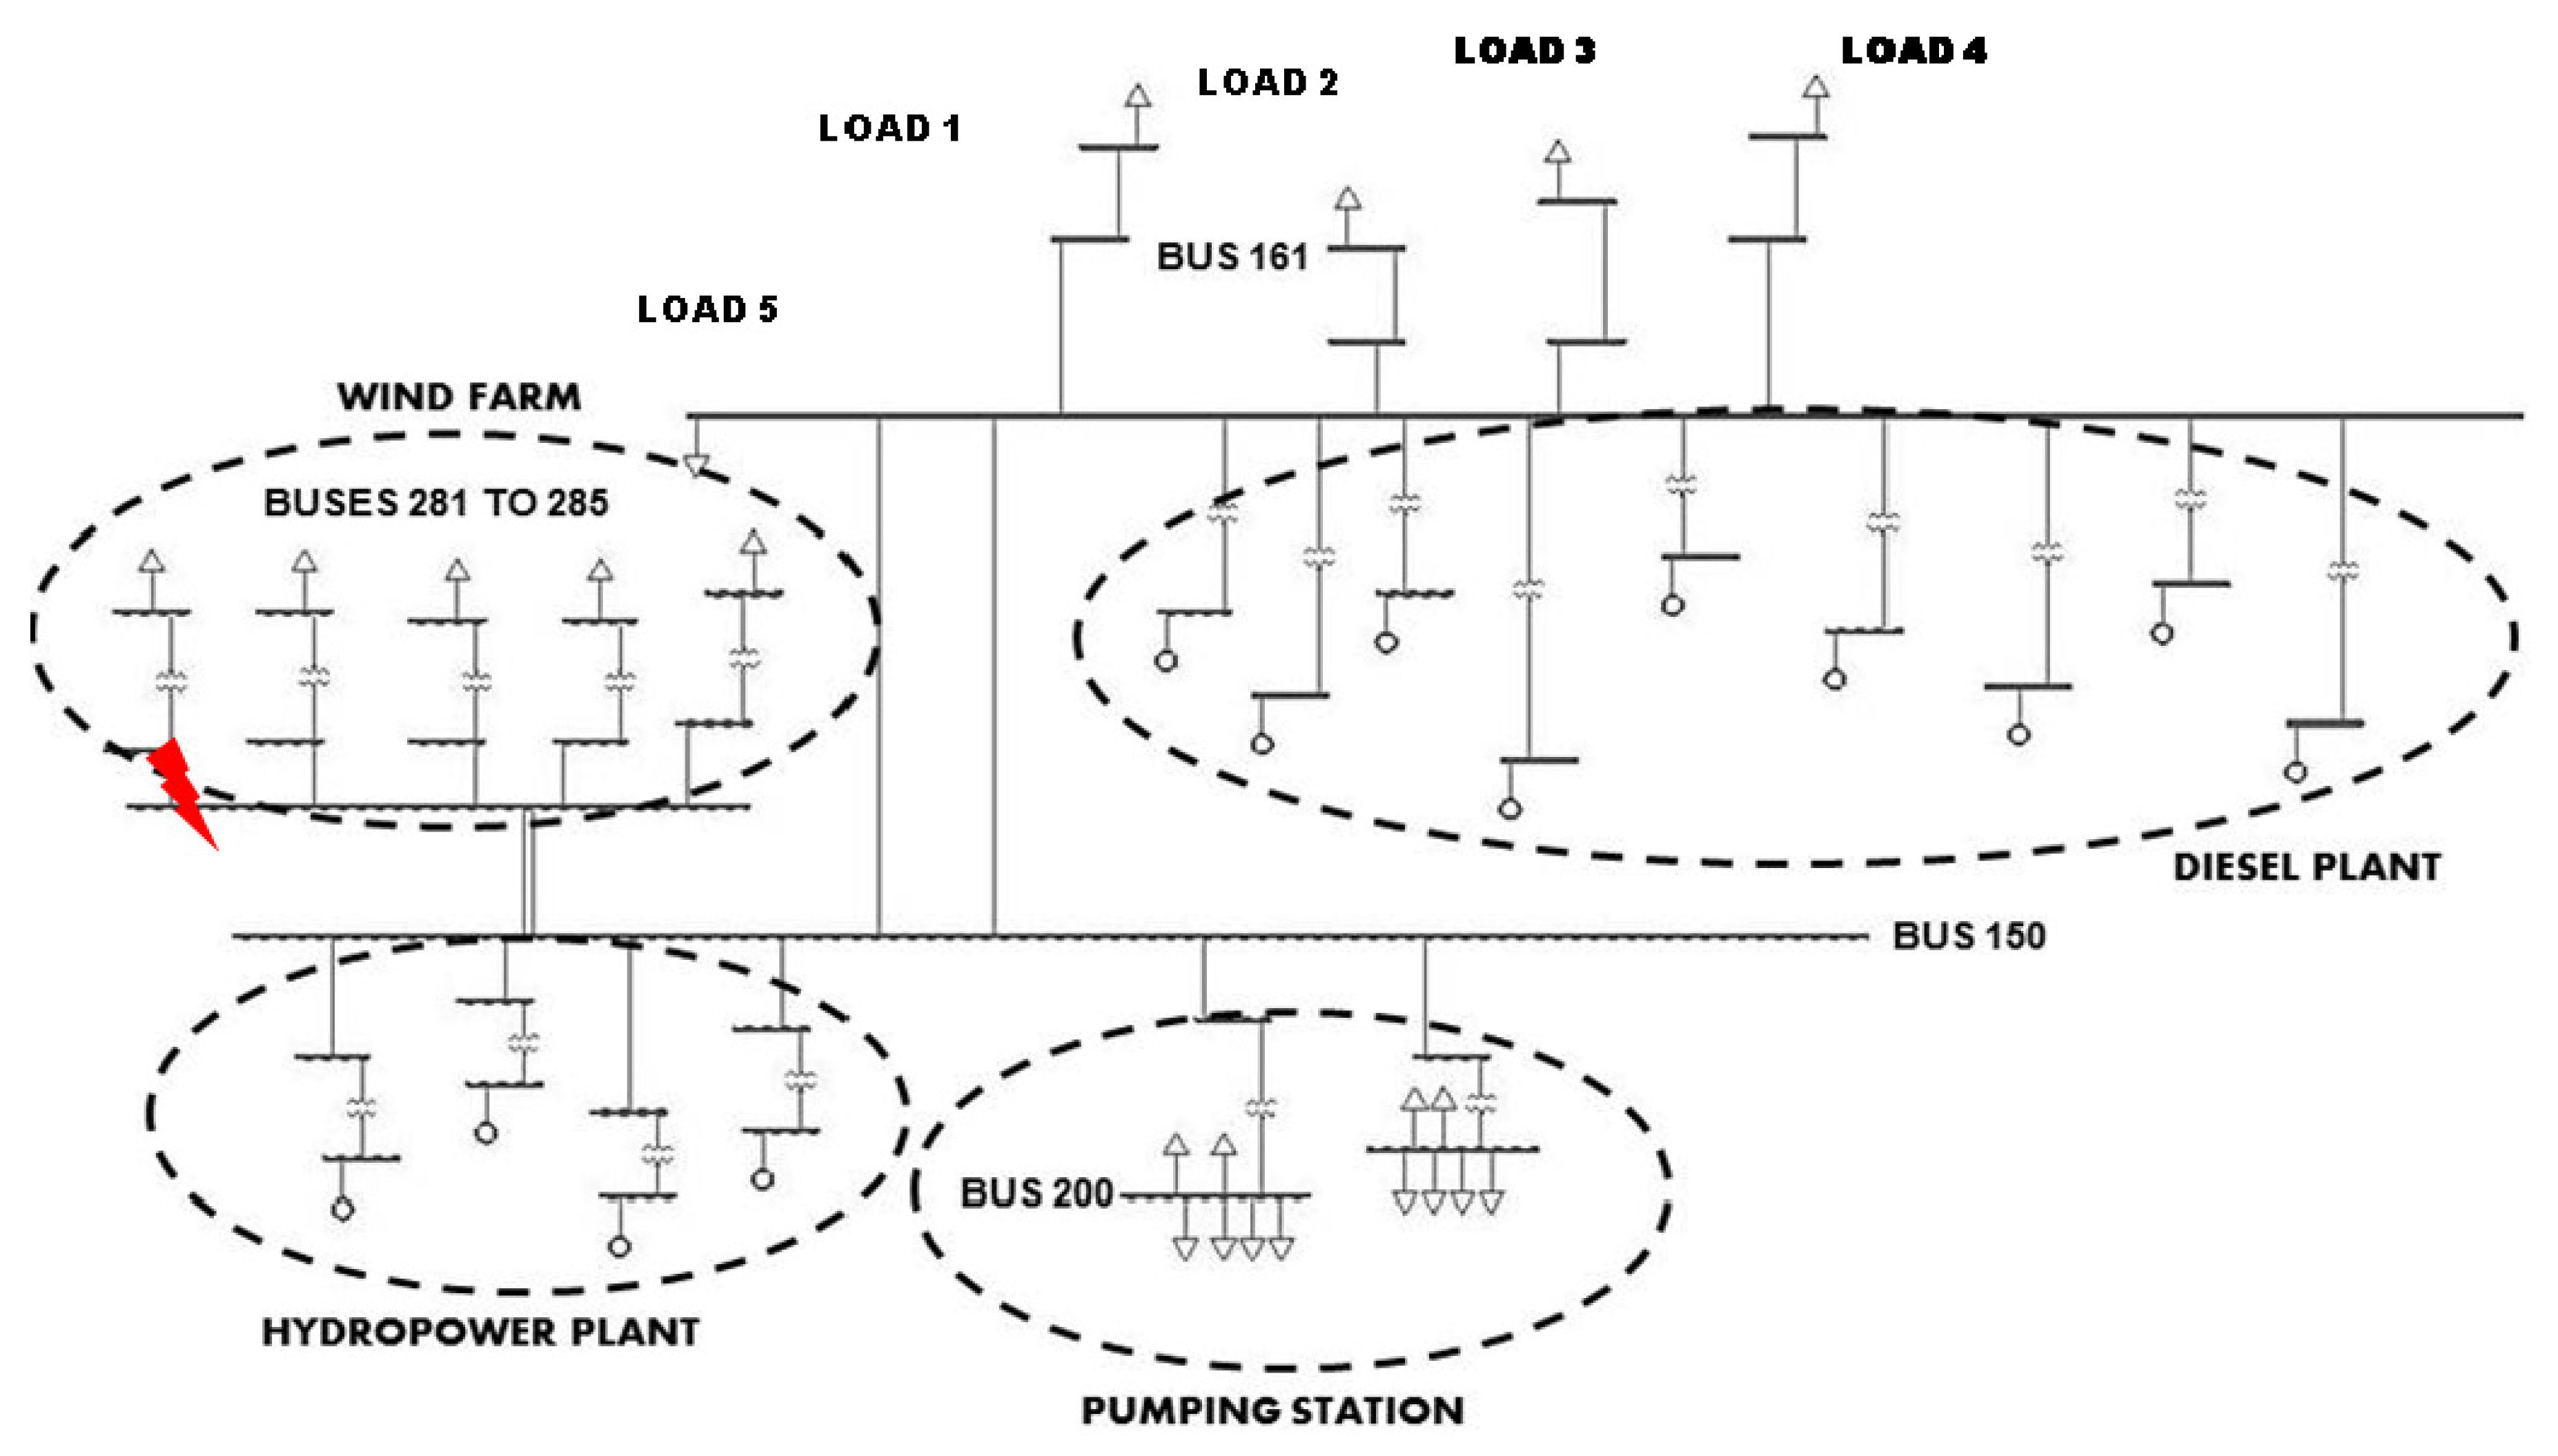 Energies Free Full Text Power System Stability Of A Small Sized Hydro Plant Circuit Diagram No